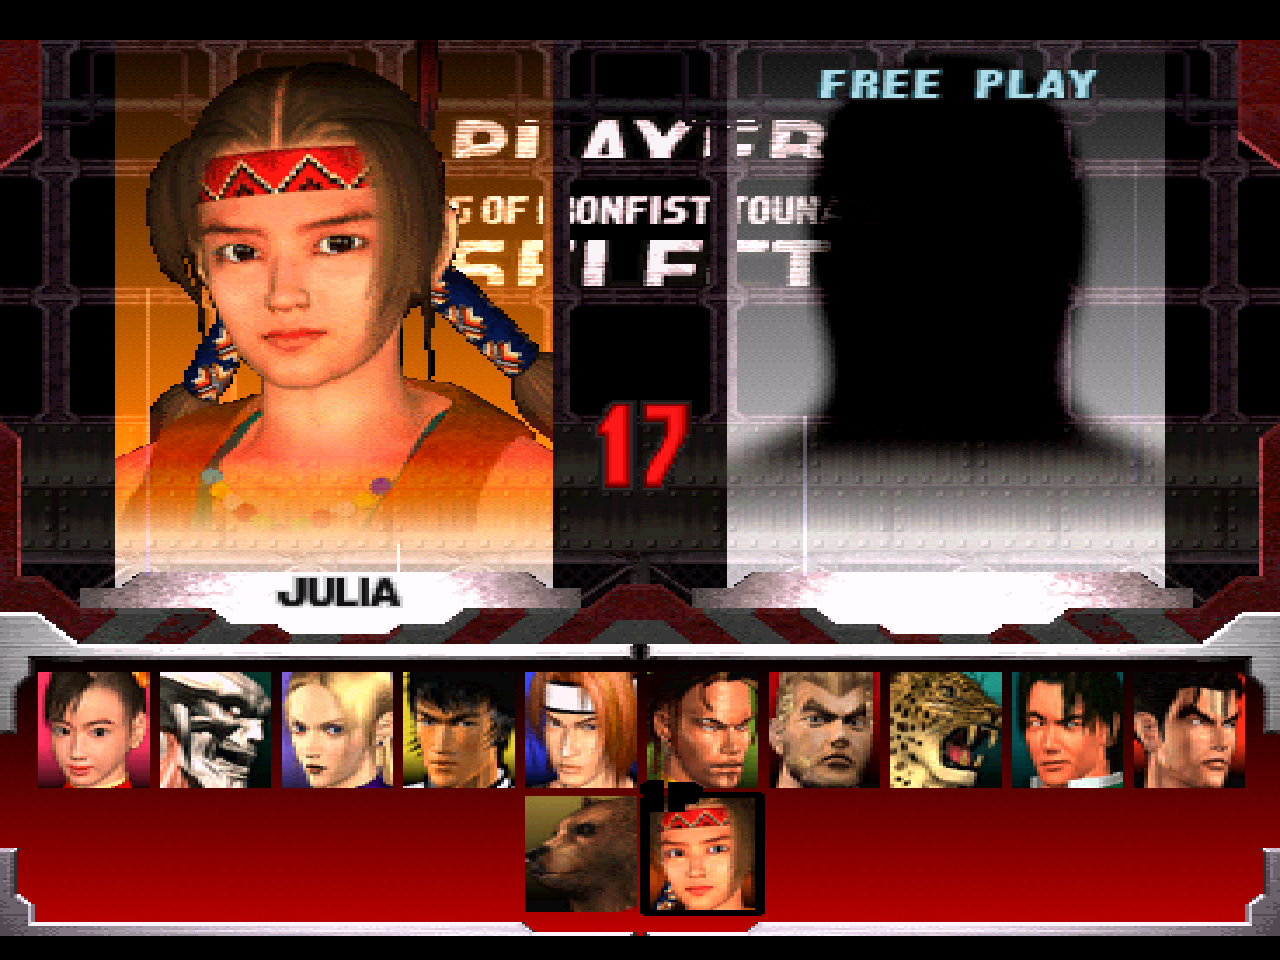 https://s3.eu-west-3.amazonaws.com/games.anthony-dessalles.com/Tekken 3 PS1 2020 - Screenshots/Tekken 3-201203-220312.png